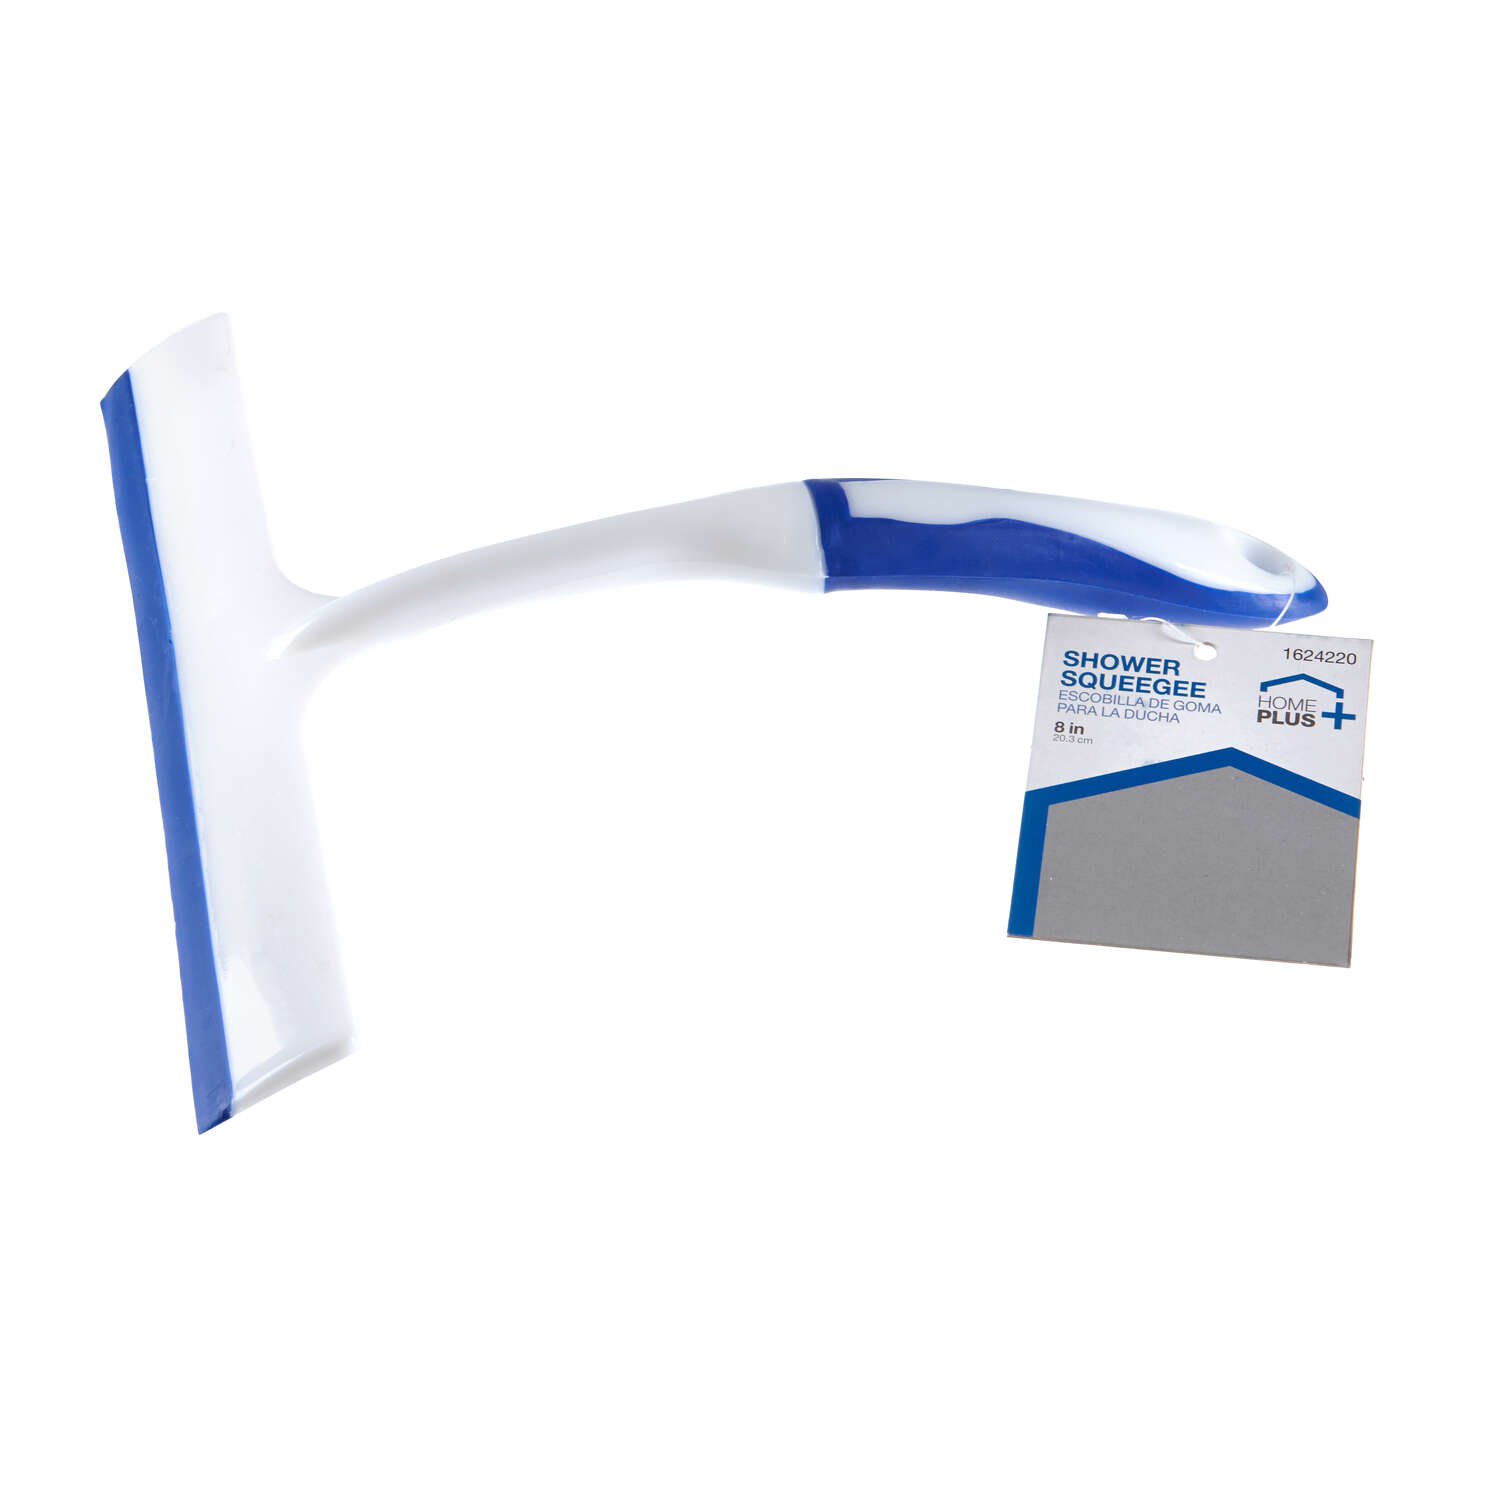 Home Plus  8 in. Plastic  Shower Squeegee